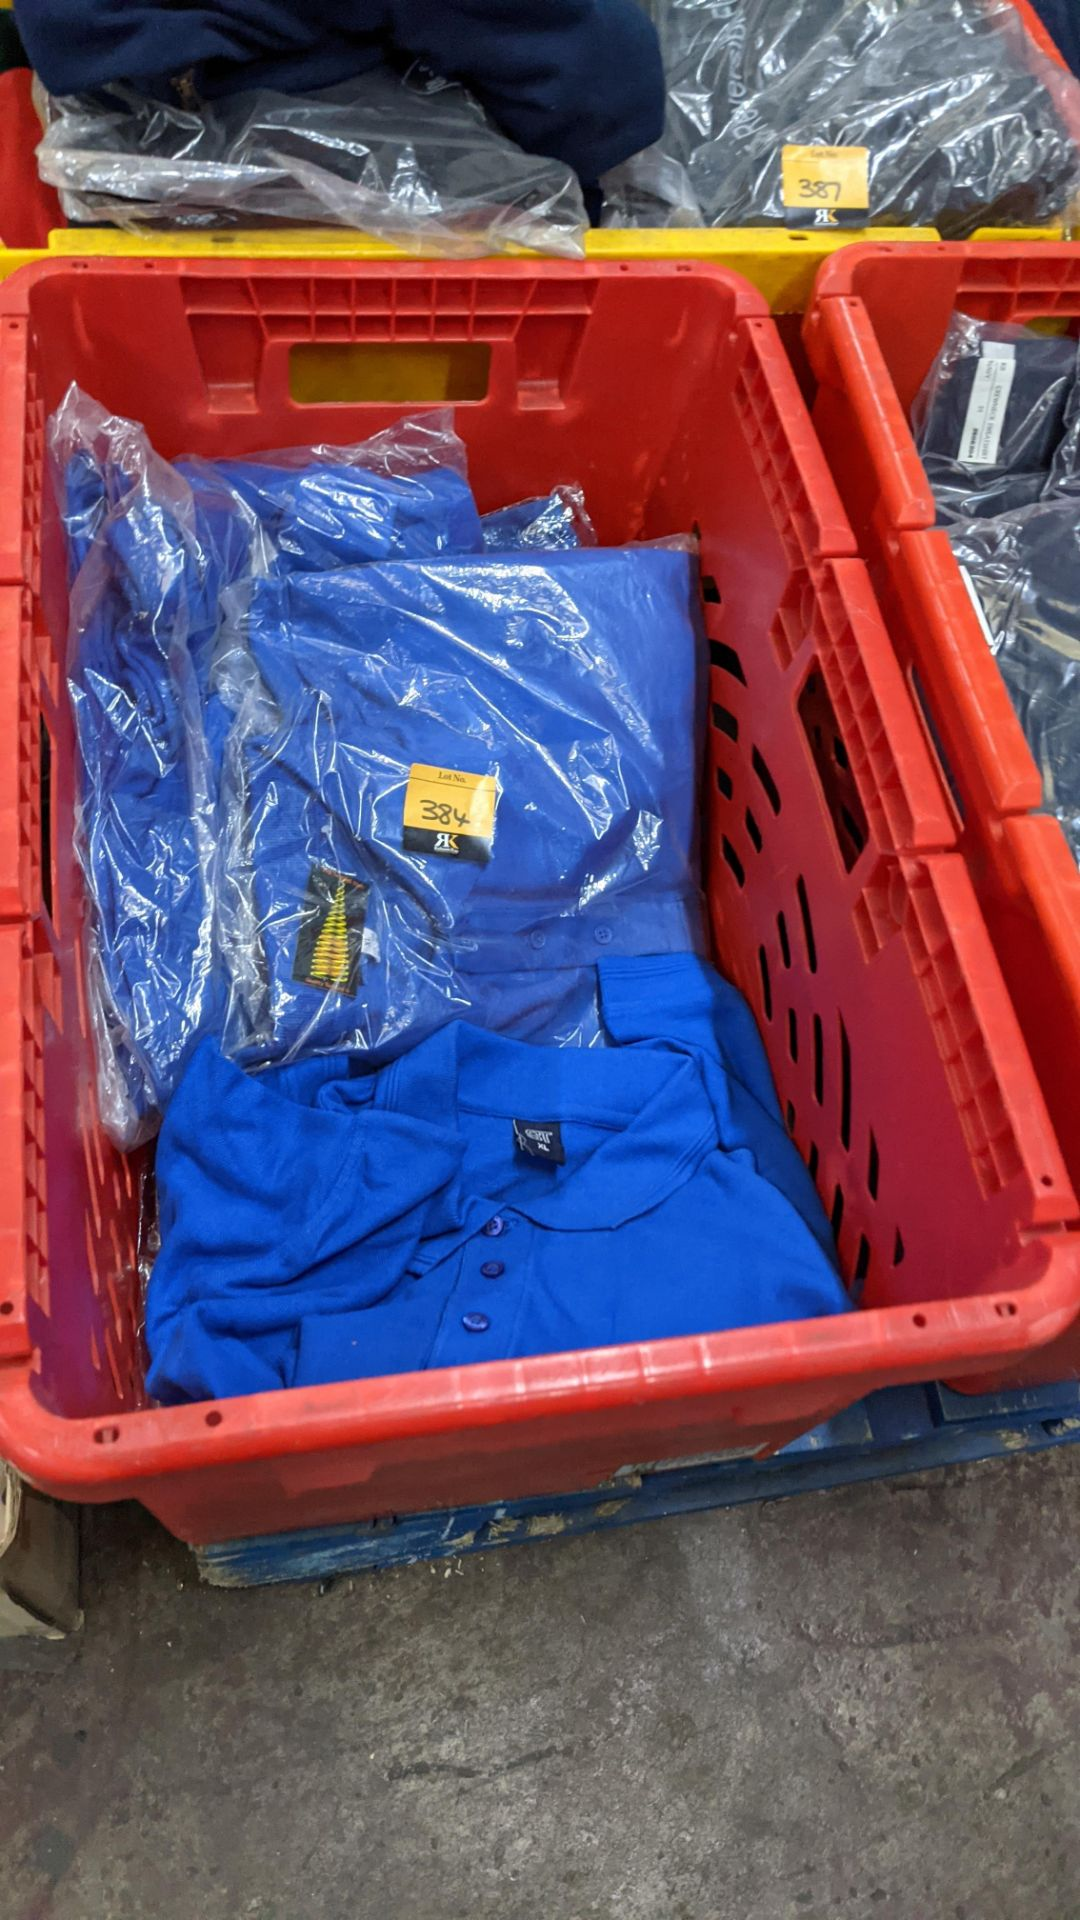 Approx 17 off bright blue polo shirts - Image 2 of 4